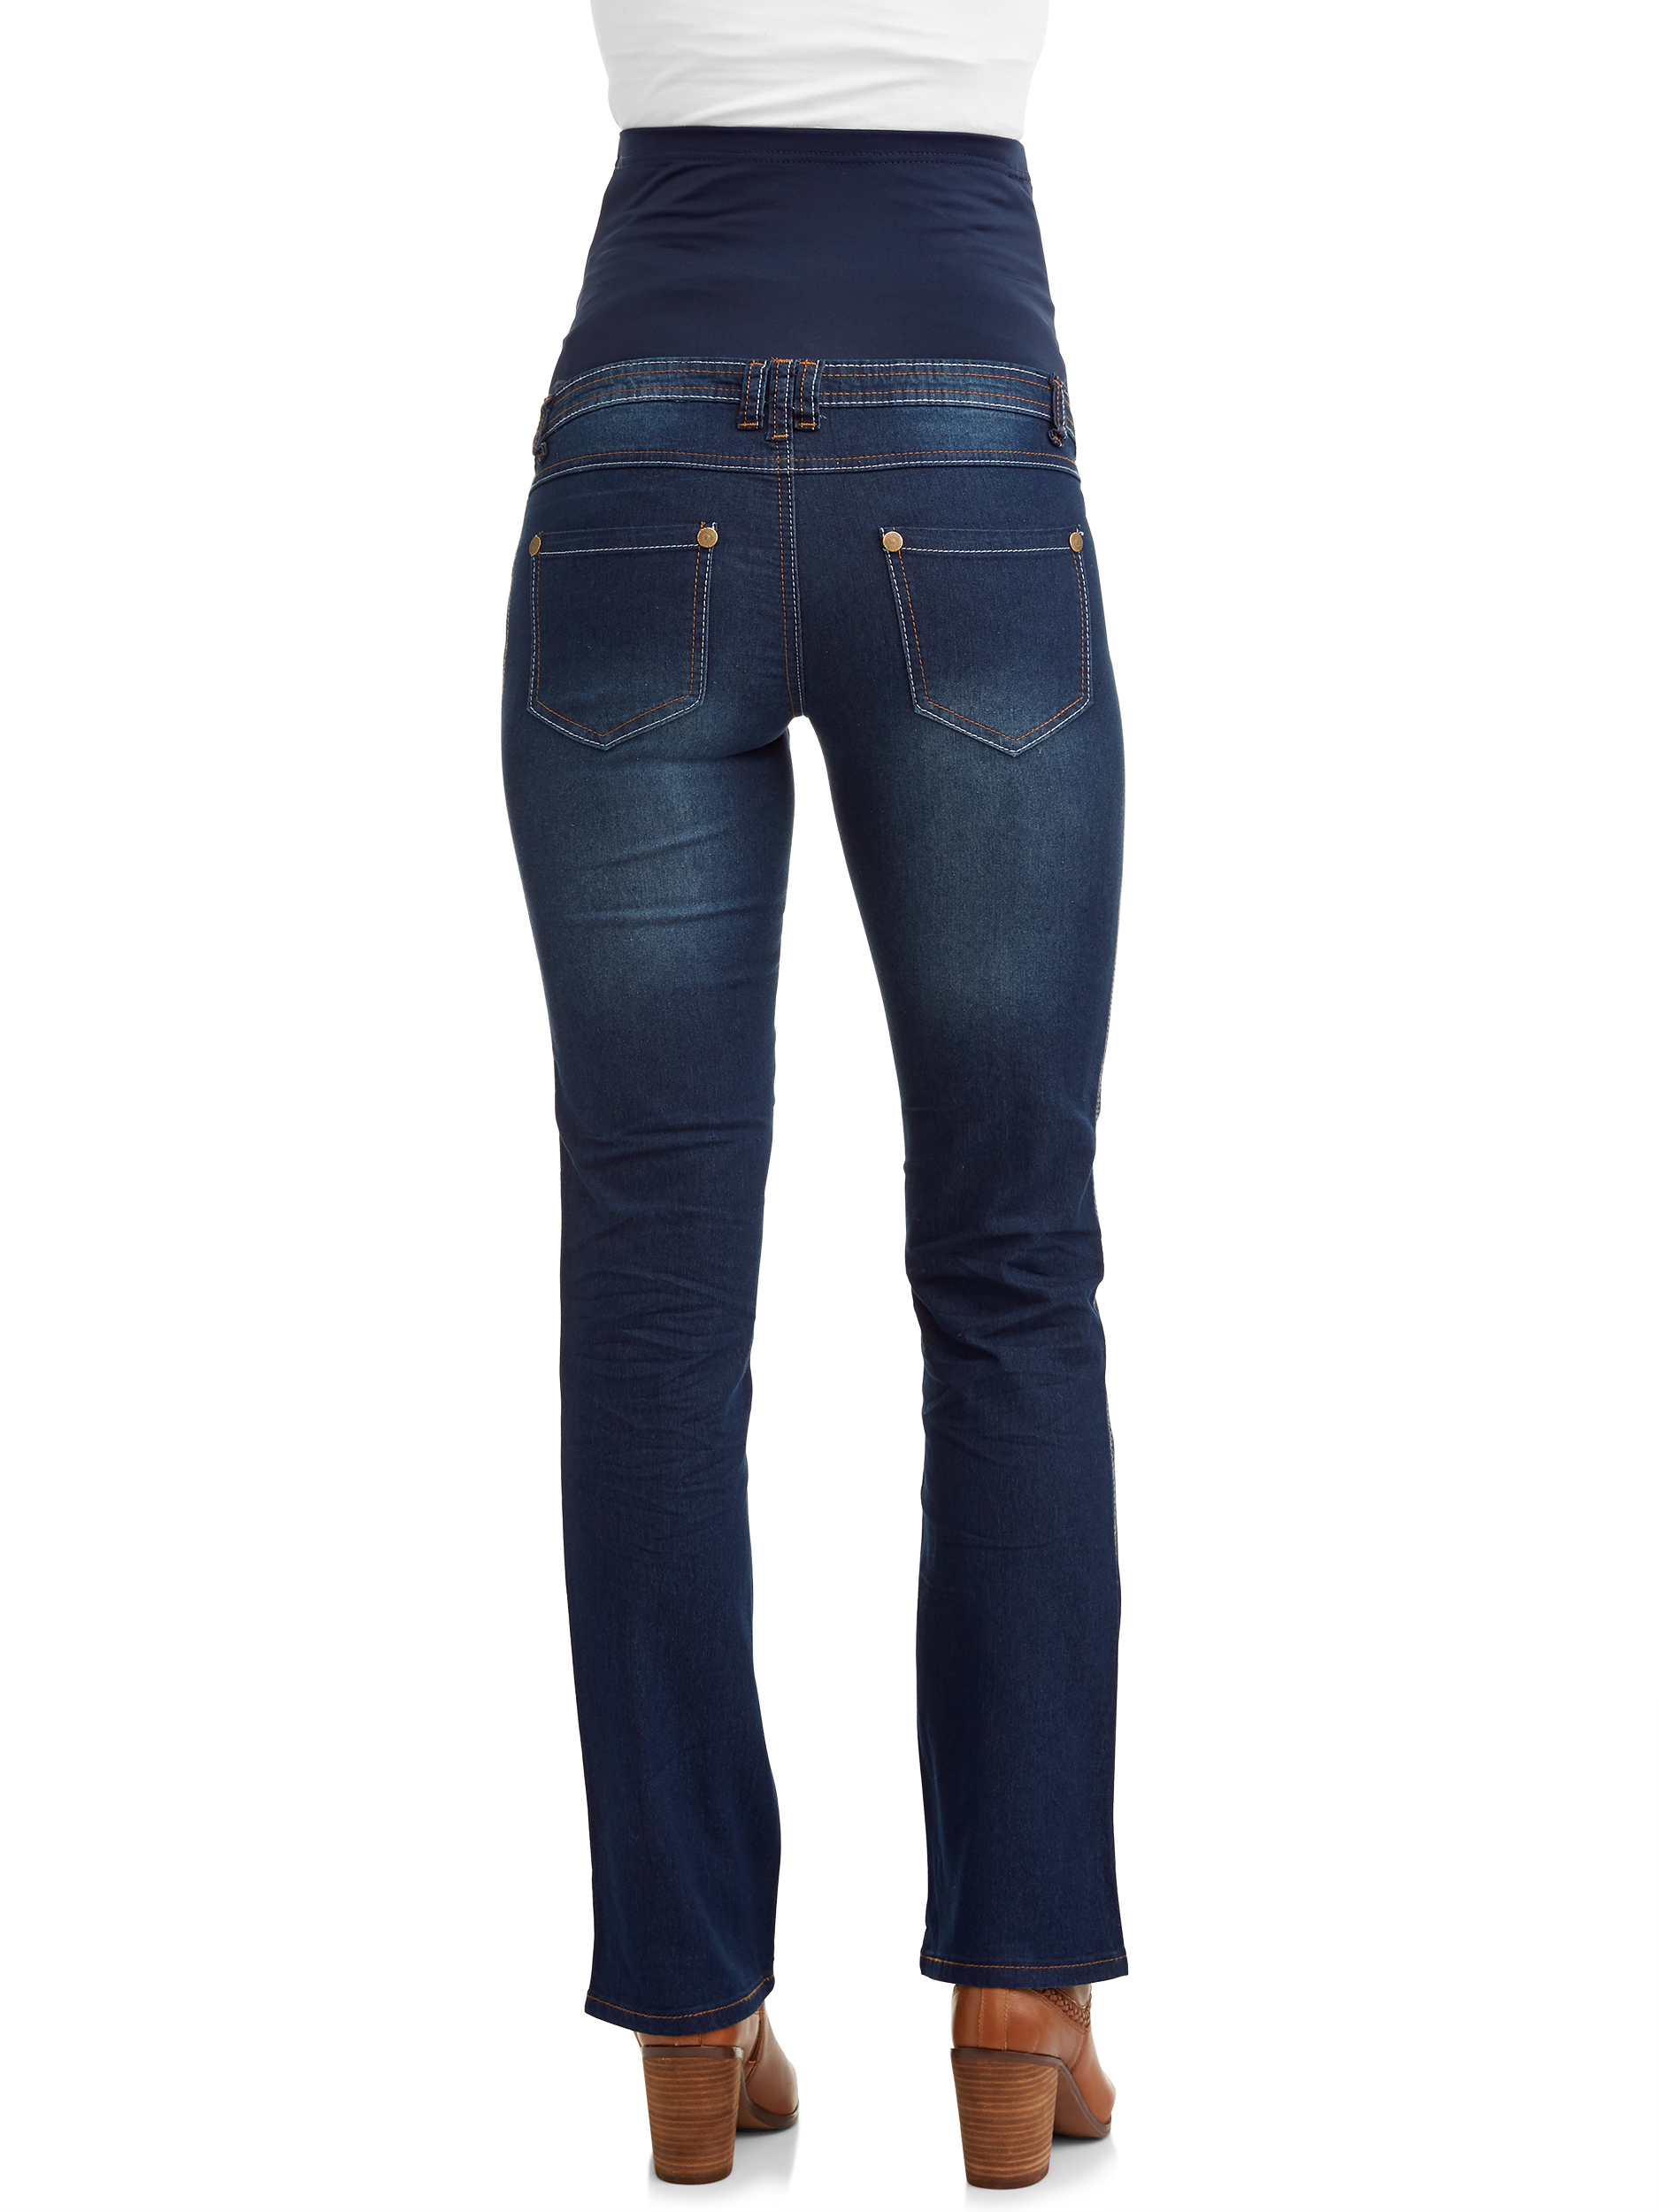 b05e89c4612d2 Oh! Mamma - Maternity Full Panel Super Soft Bootcut Jeans - Available in Plus  Sizes - Walmart.com